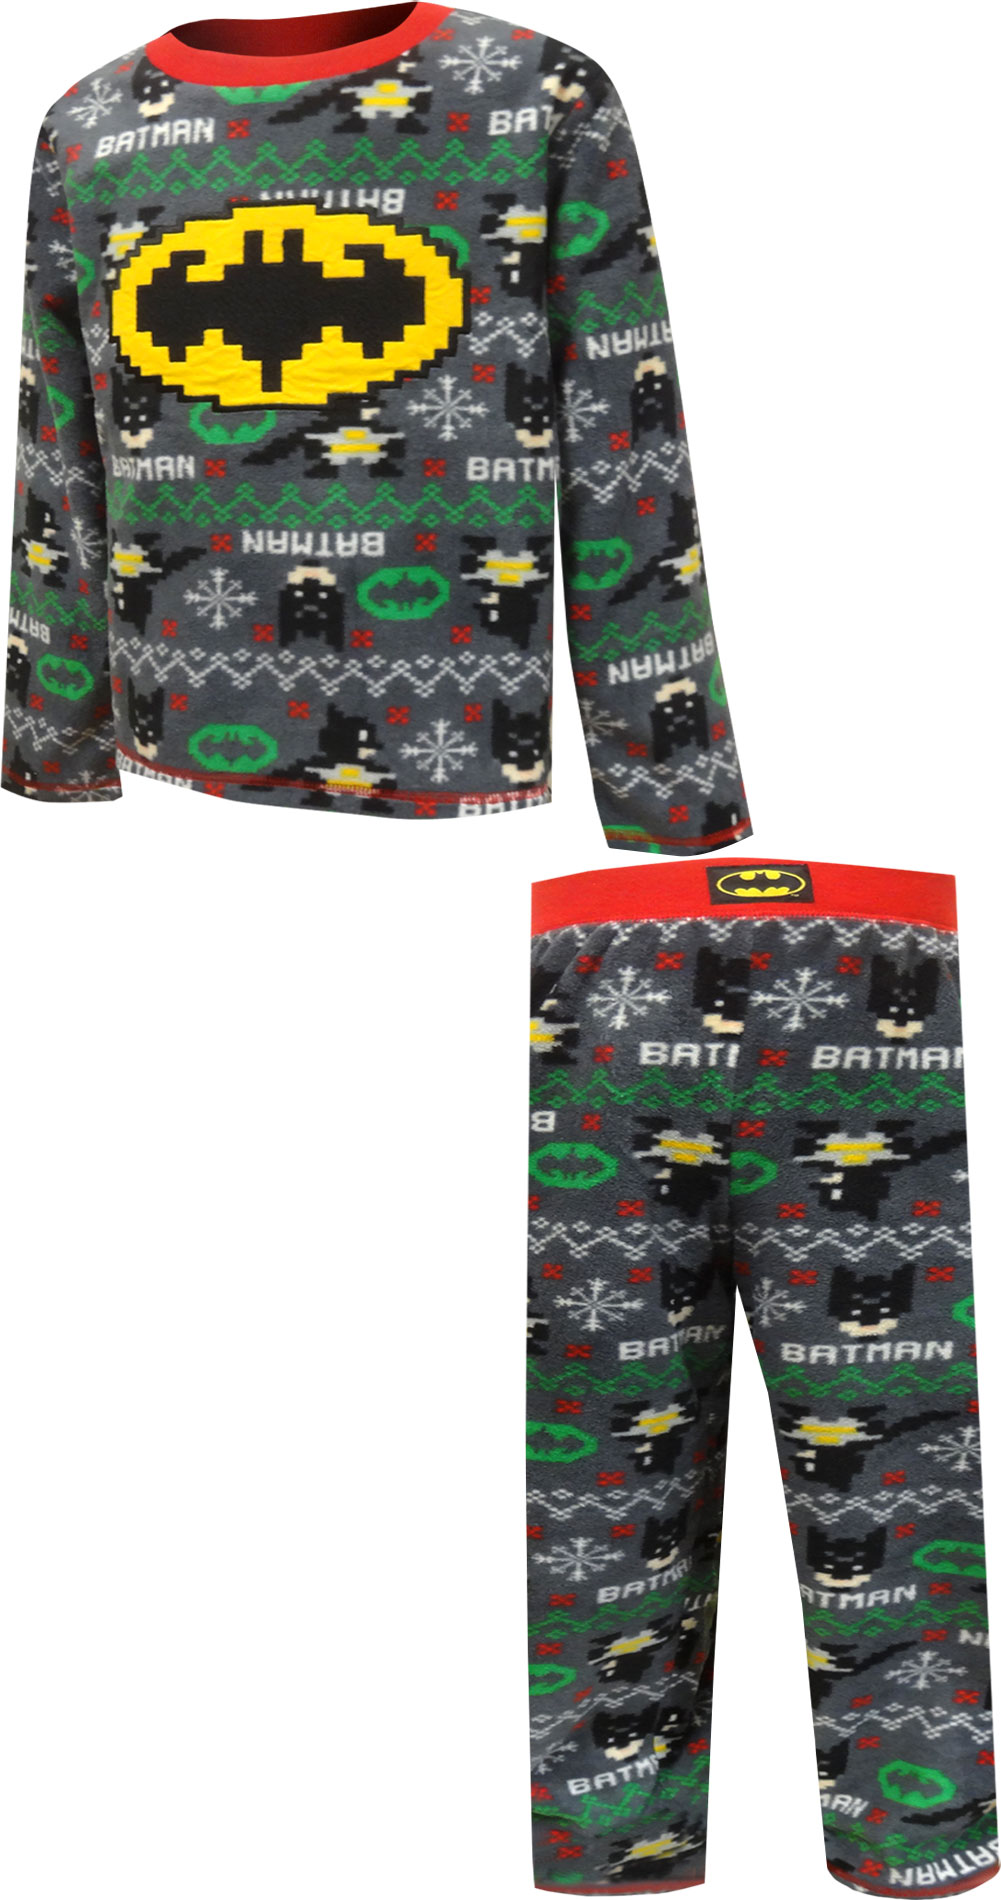 Image of DC Comics Batman Christmas Fair Isle Fleece Pajamas for boys